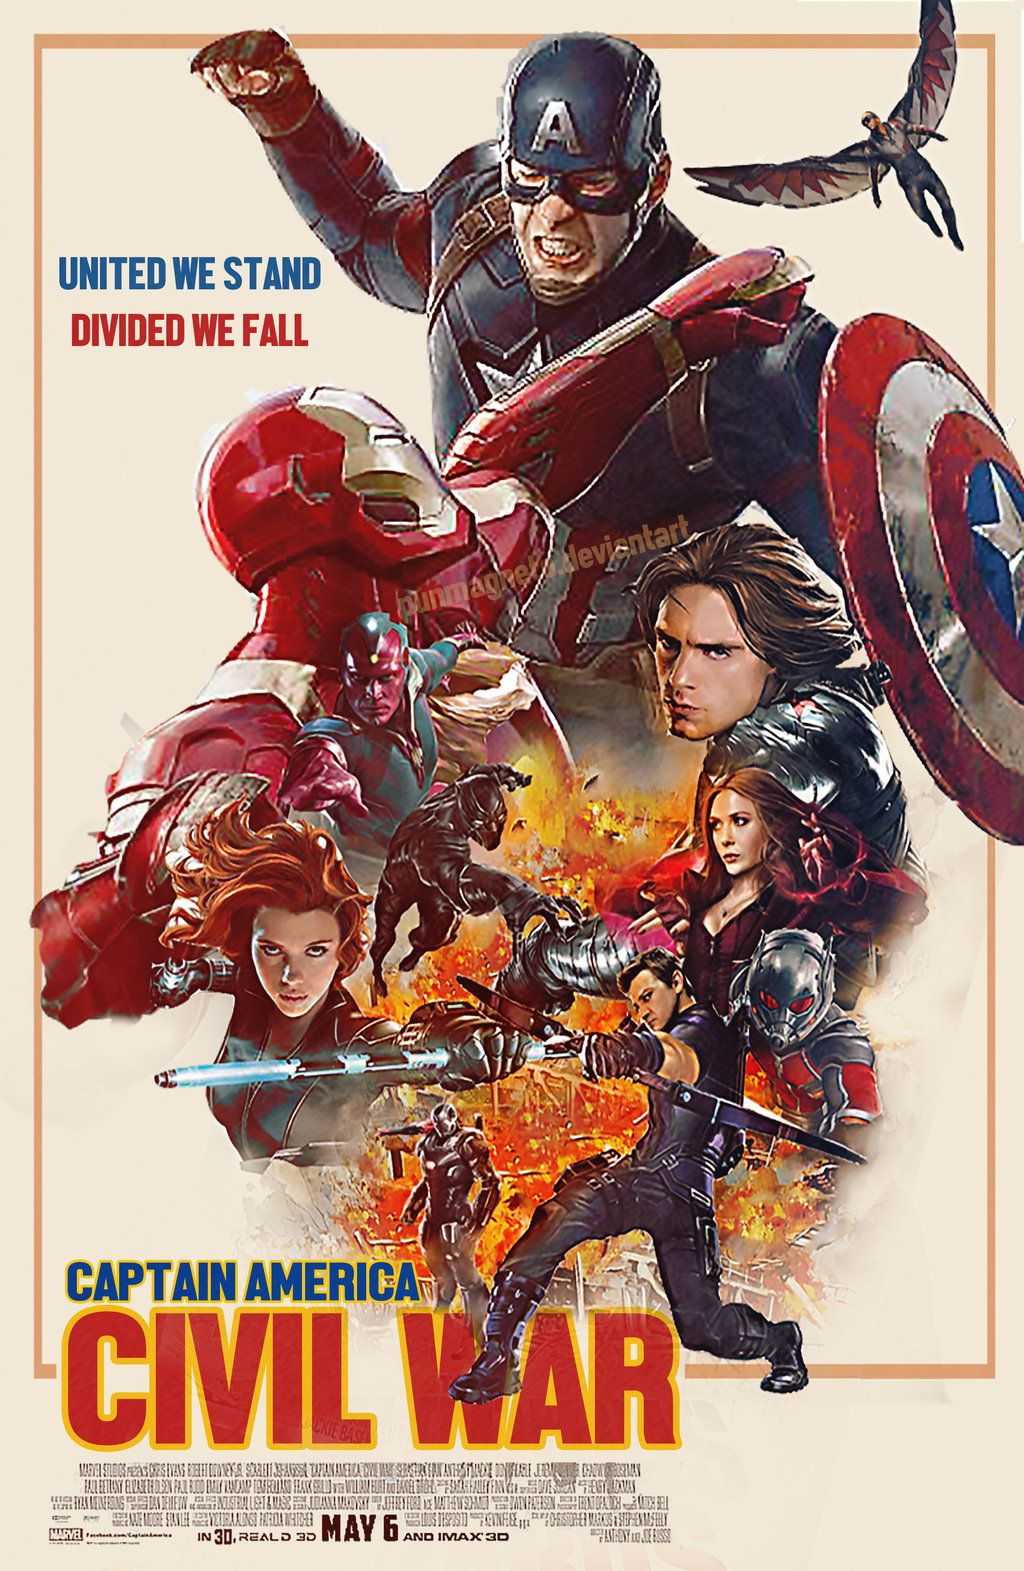 Final Style Iron Man Capt America Endgame Original Movie Poster Avengers